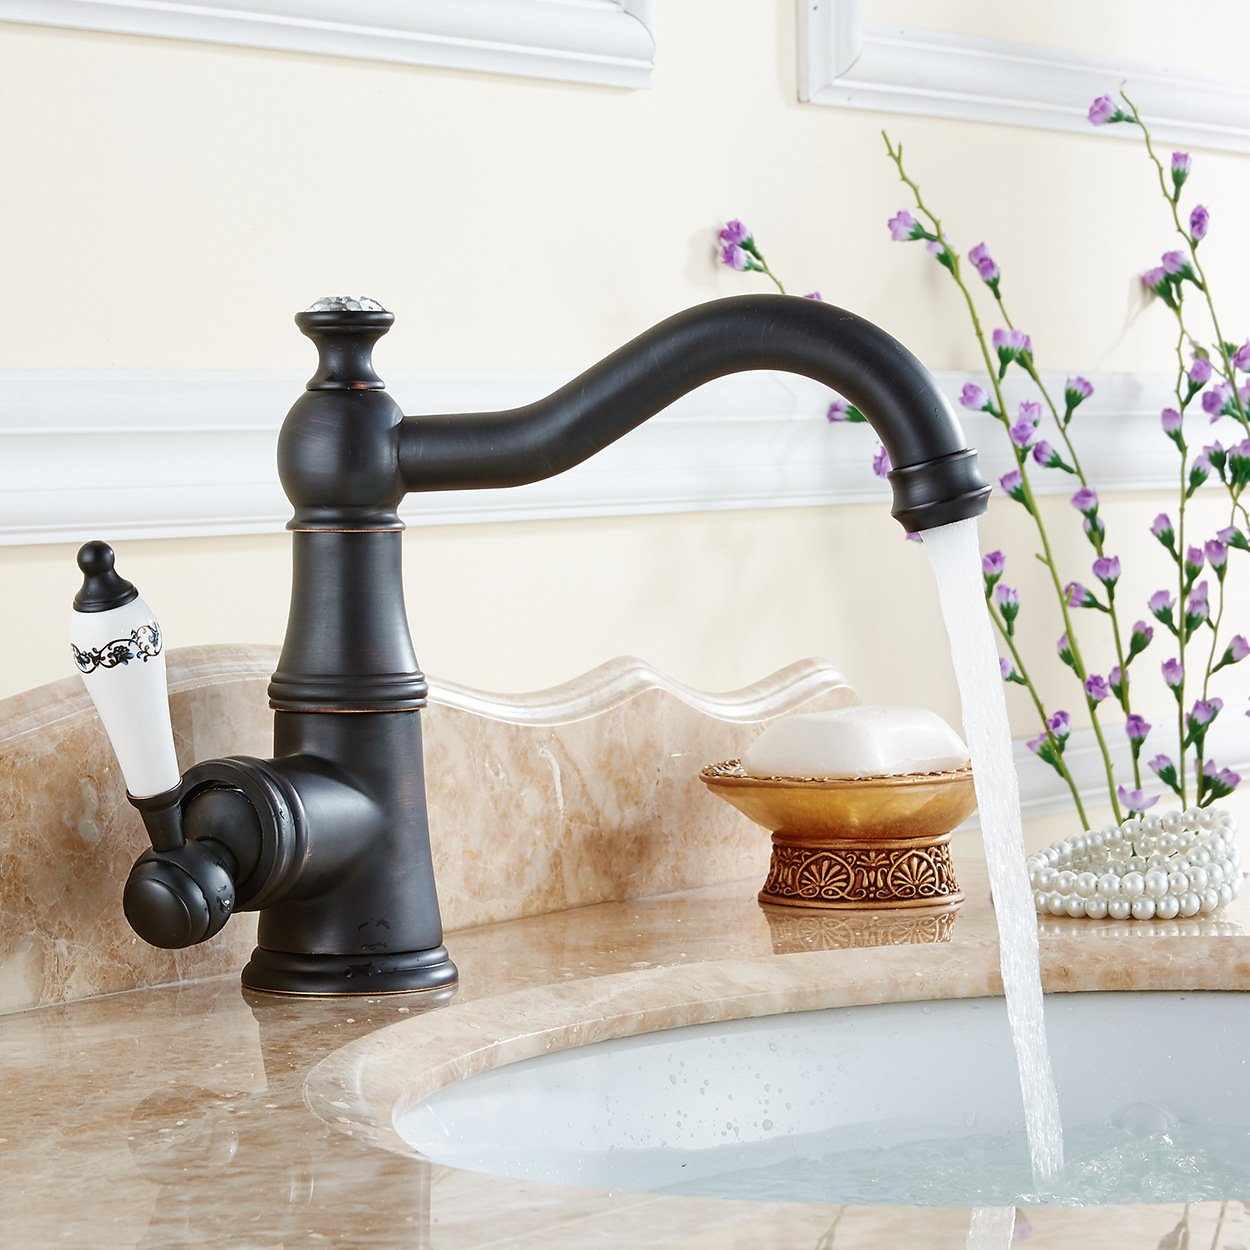 LHbox Basin Mixer Tap Bathroom Sink Faucet Basin faucet black ancient classical cold and hot tub on the bluee-tiled single hole basin with high water faucet